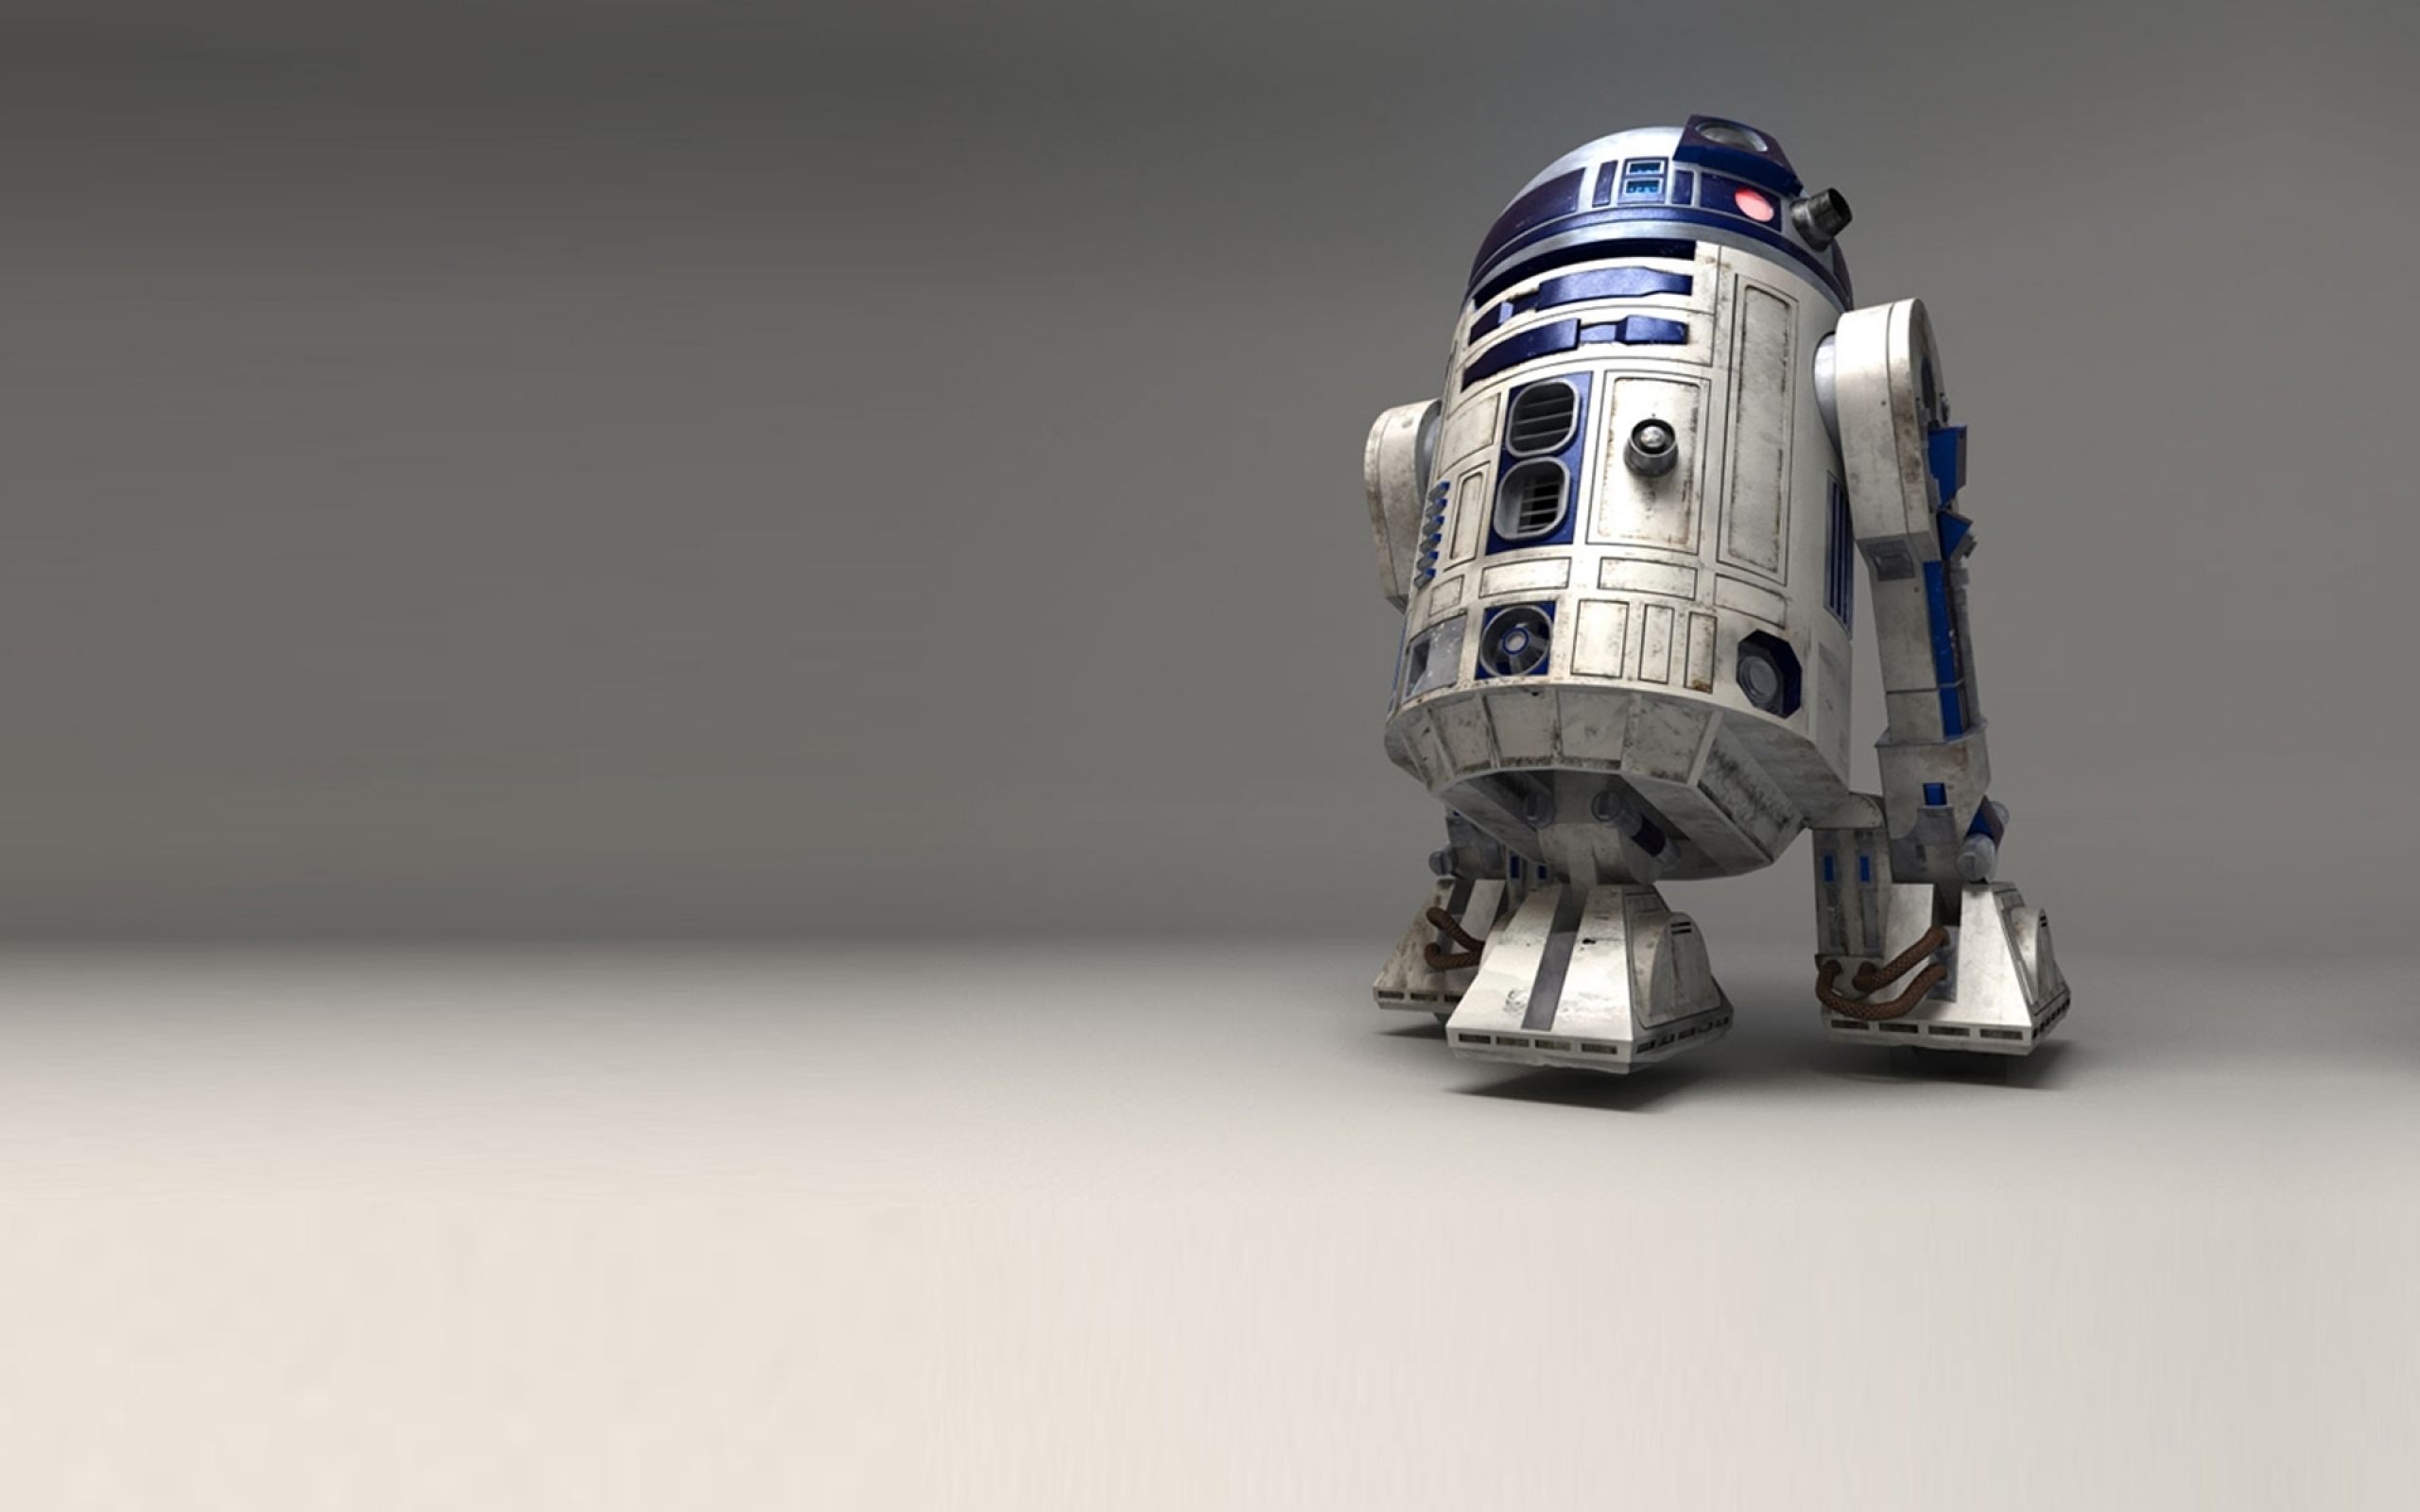 46 R2-D2 HD Wallpapers | Backgrounds - Wallpaper Abyss